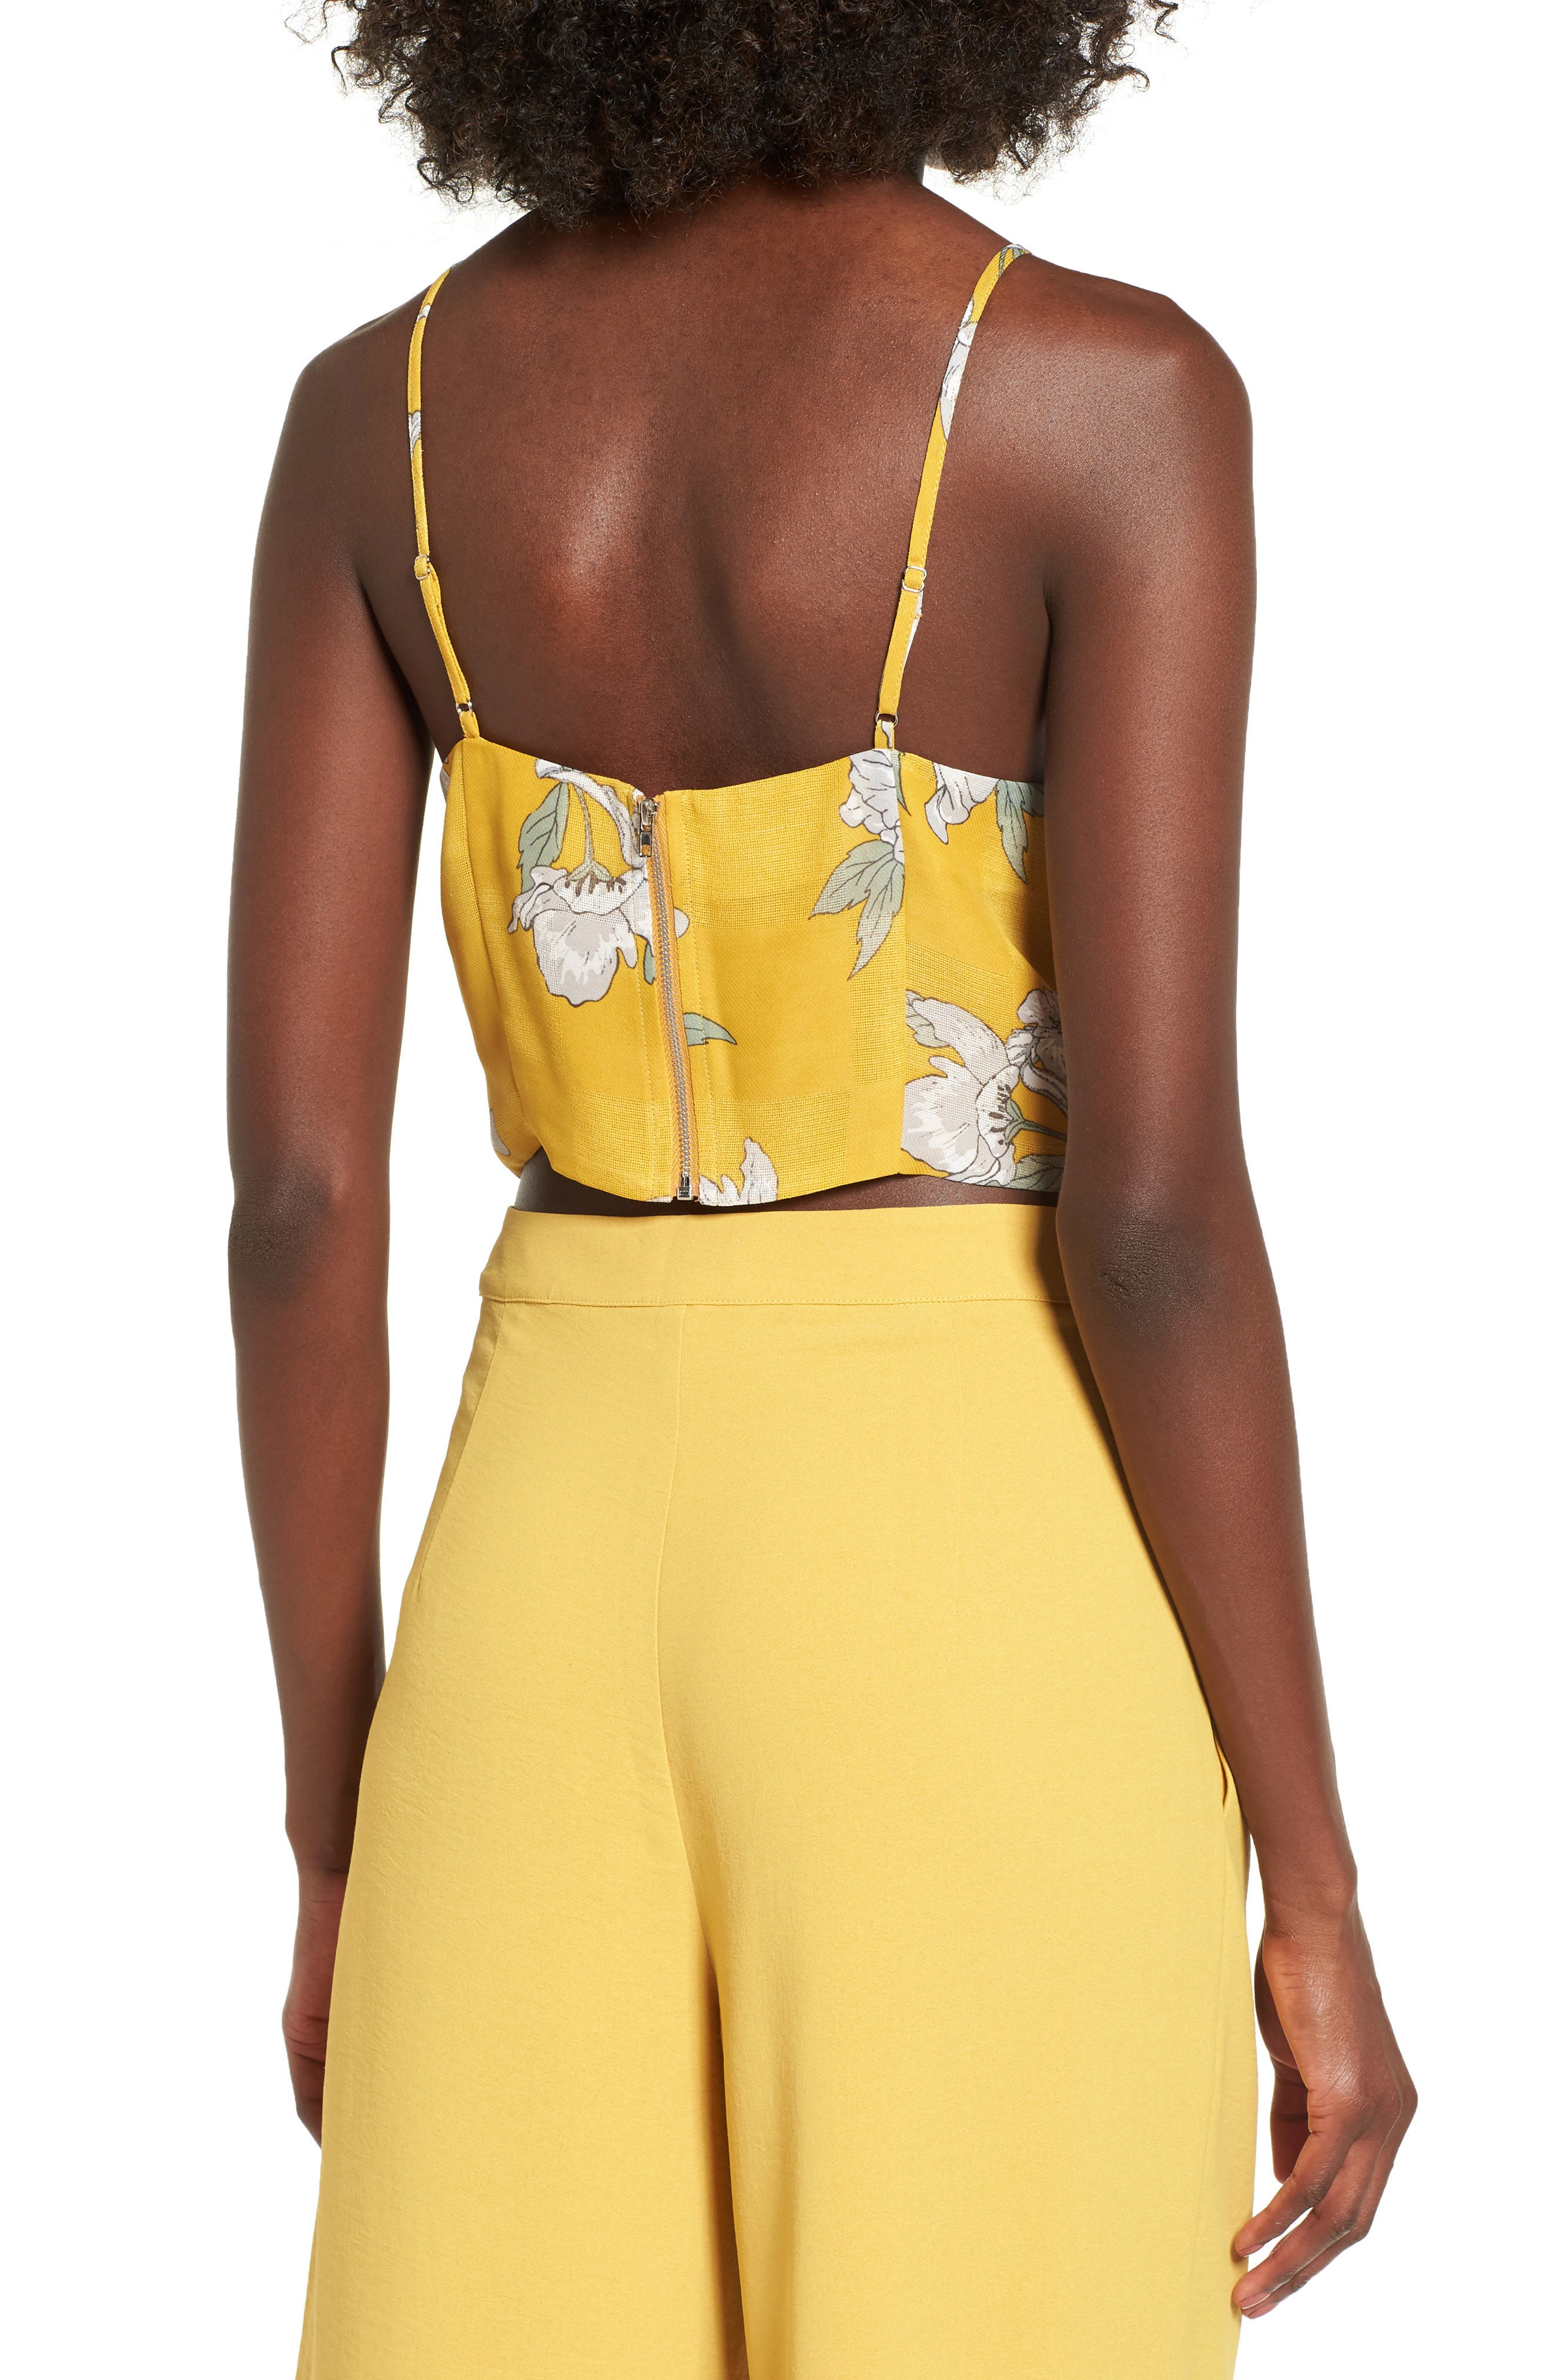 Chriselle x J.O.A. Tie Front Crop Top,                             Alternate thumbnail 7, color,                             Quince Blossom